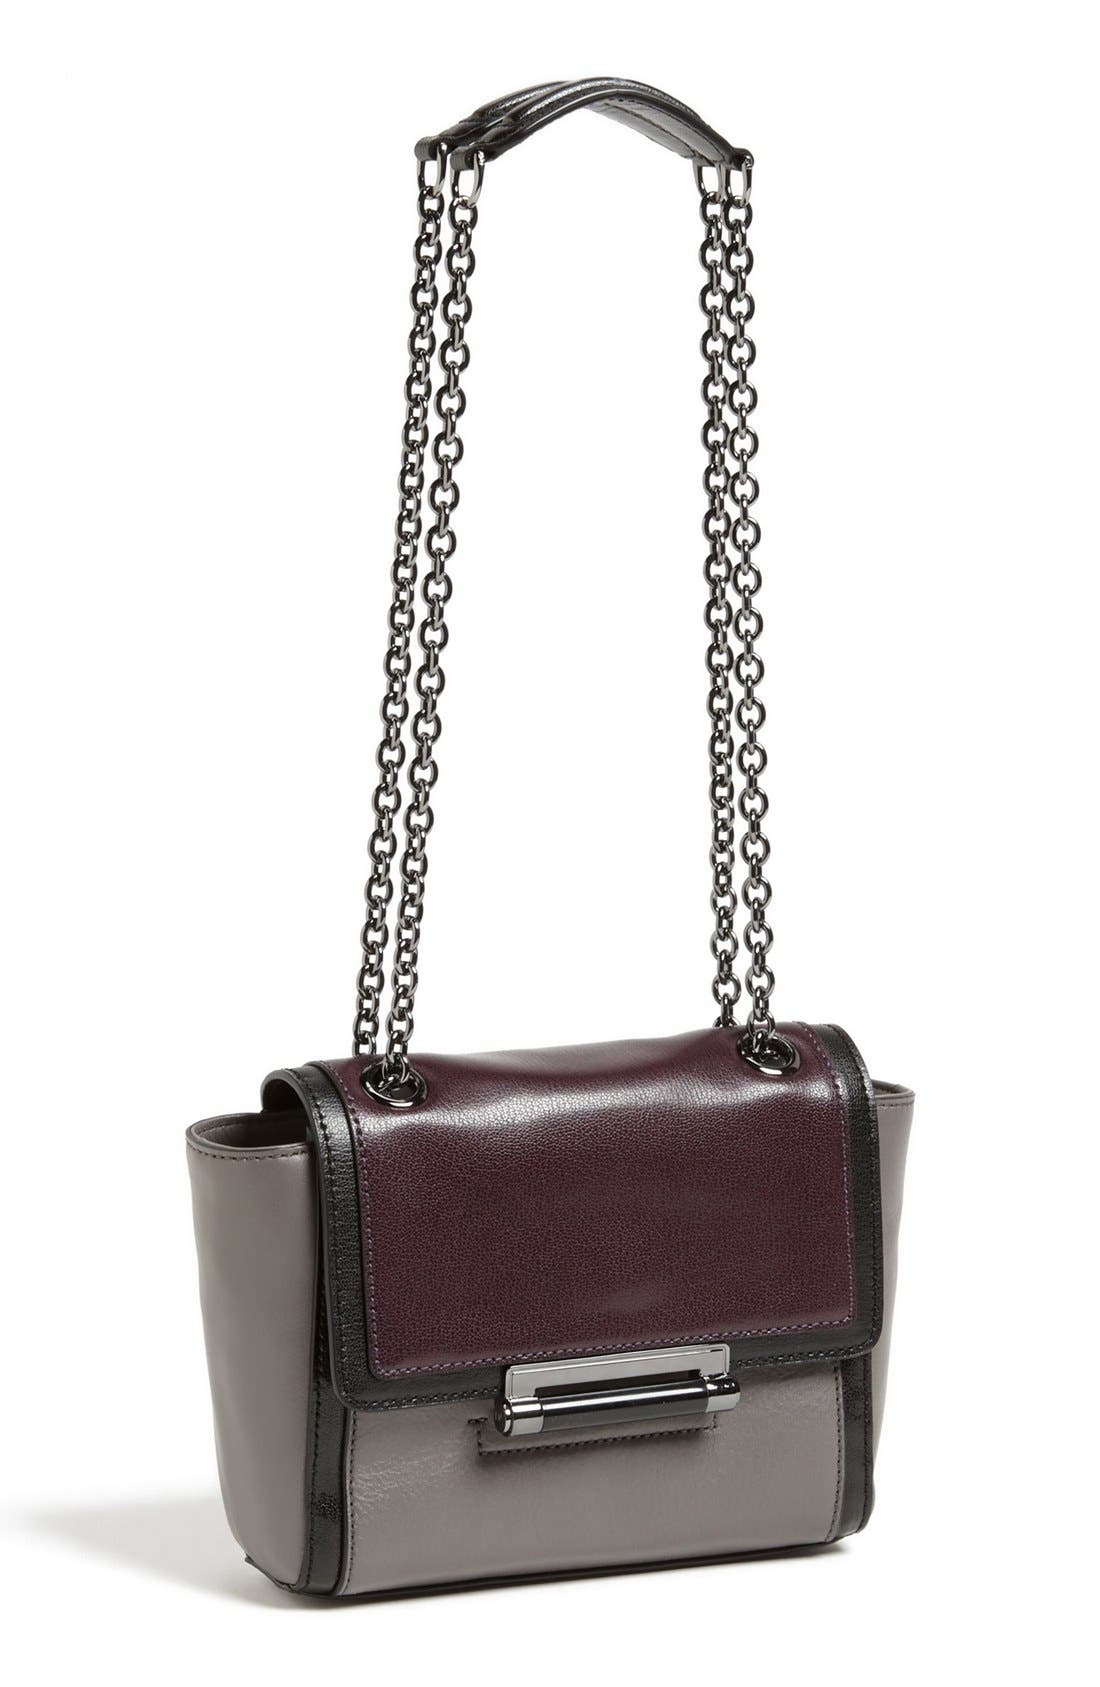 Alternate Image 1 Selected - Diane von Furstenberg '440 Mini' Colorblock Satchel